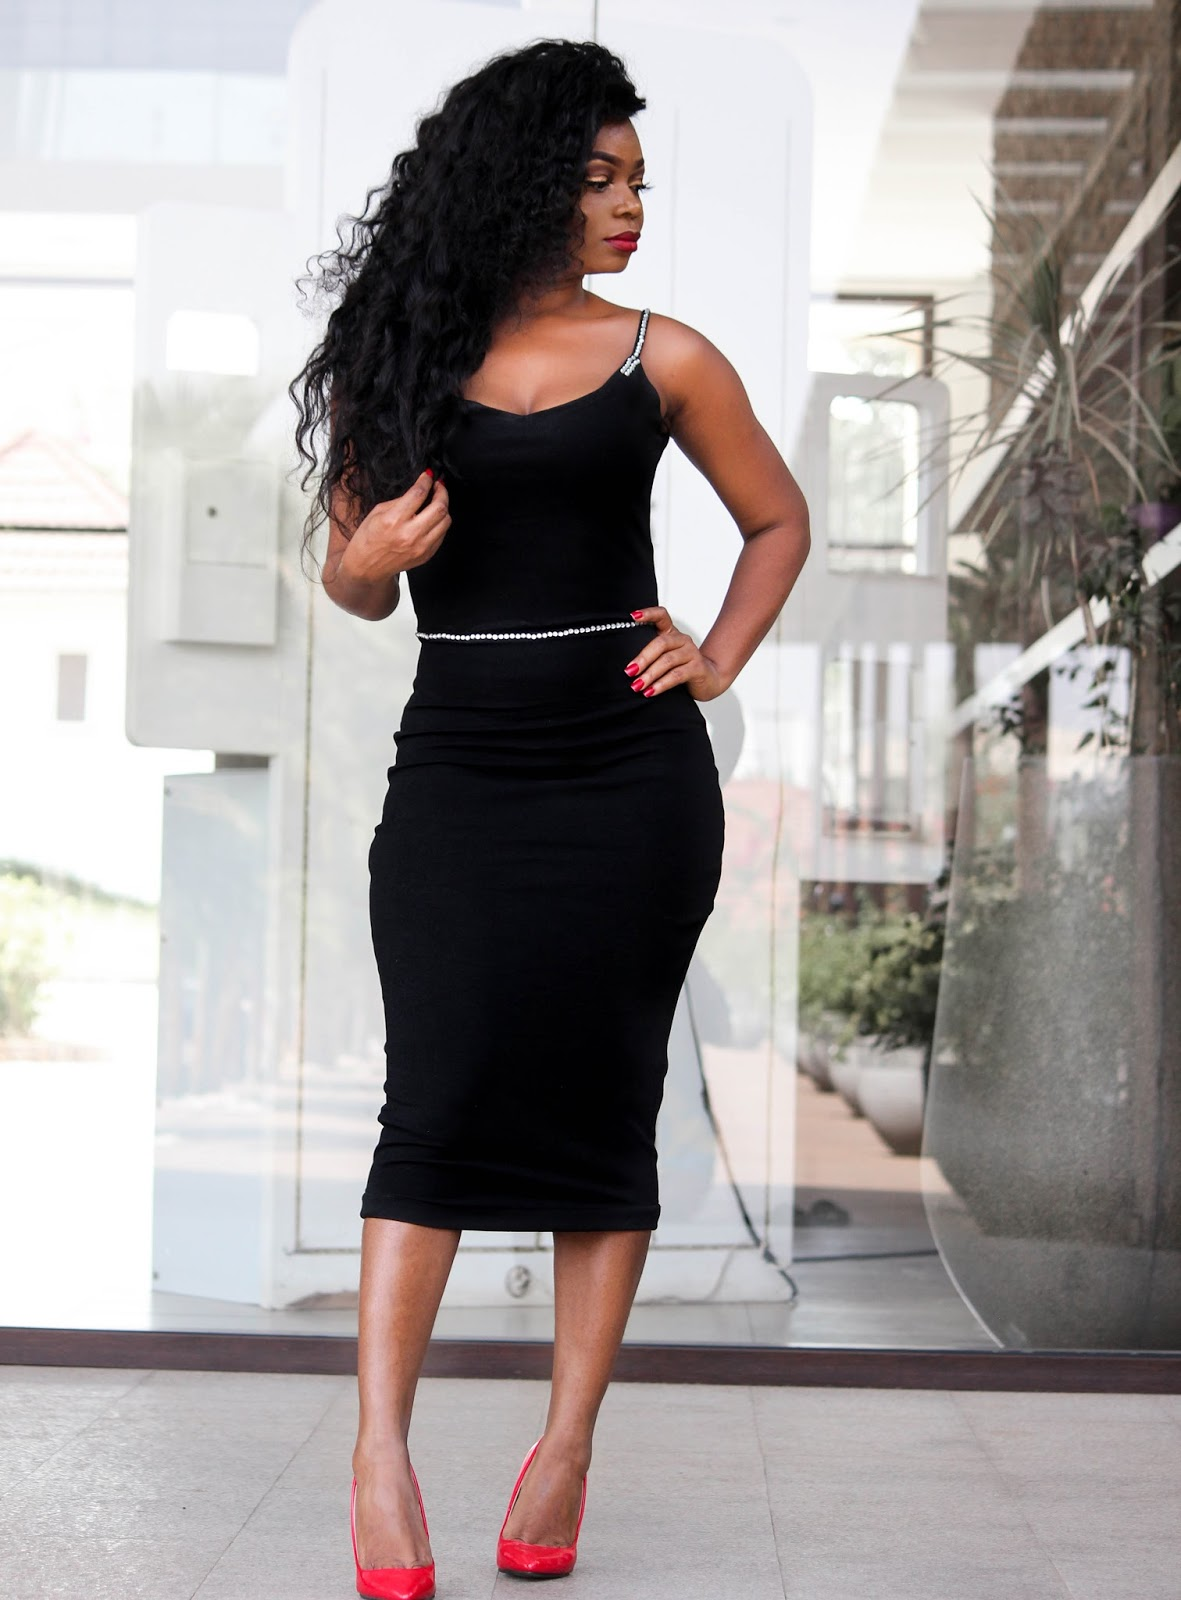 BLACK BODYCON DRESS - Black Bodycon Dress from Porshher